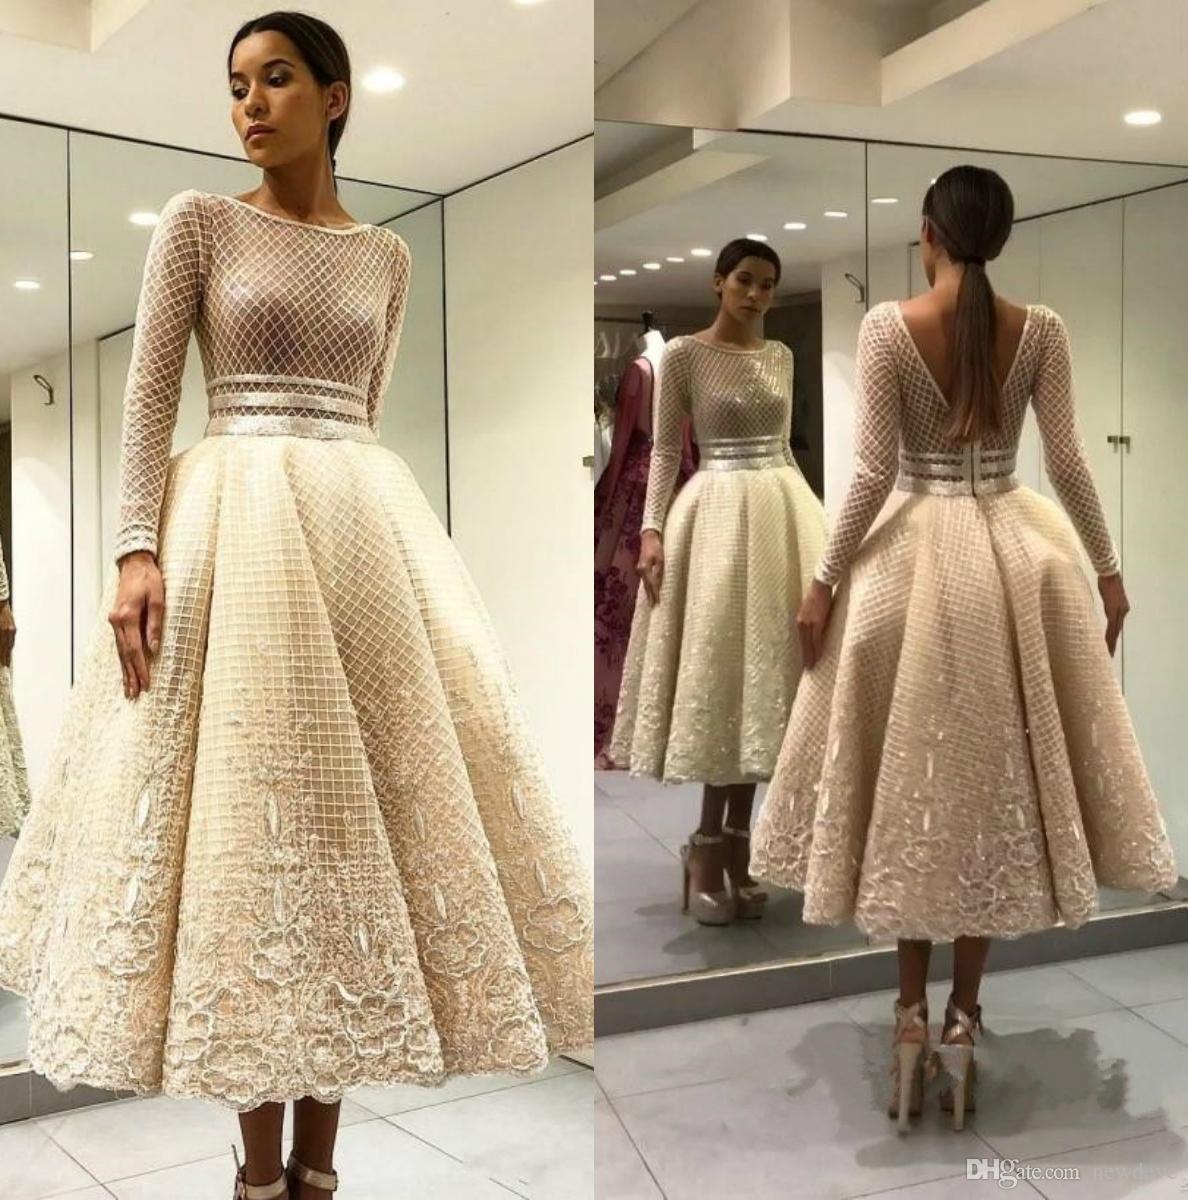 Chic Fish Net Backless 2018 Prom Dress Bateau Neck Long Sleeves Beaded  Party Evening Dresses Vestidos De Fiesta Tea Length Formal Gowns Shoes For  Prom Short ... e7b7d2297d5e